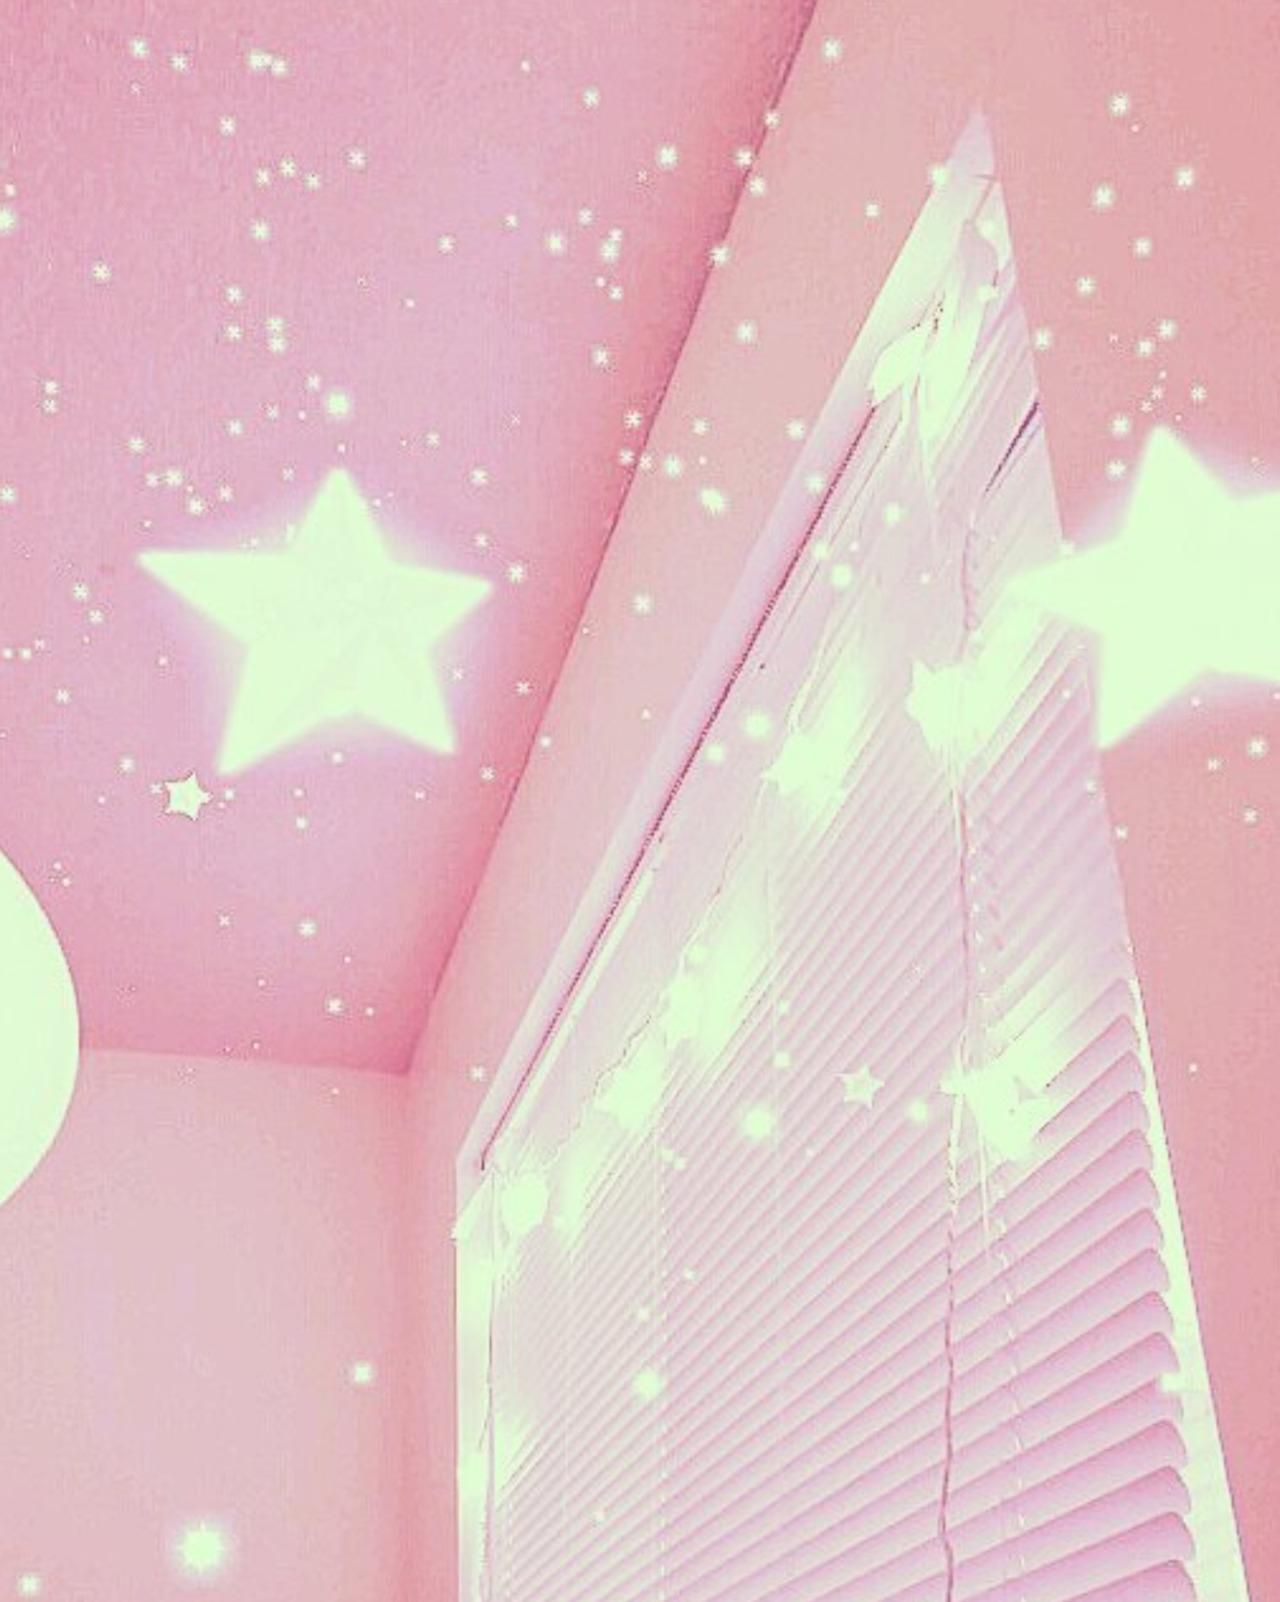 Pink Aesthetic Tumblr Wallpapers Top Free Pink Aesthetic